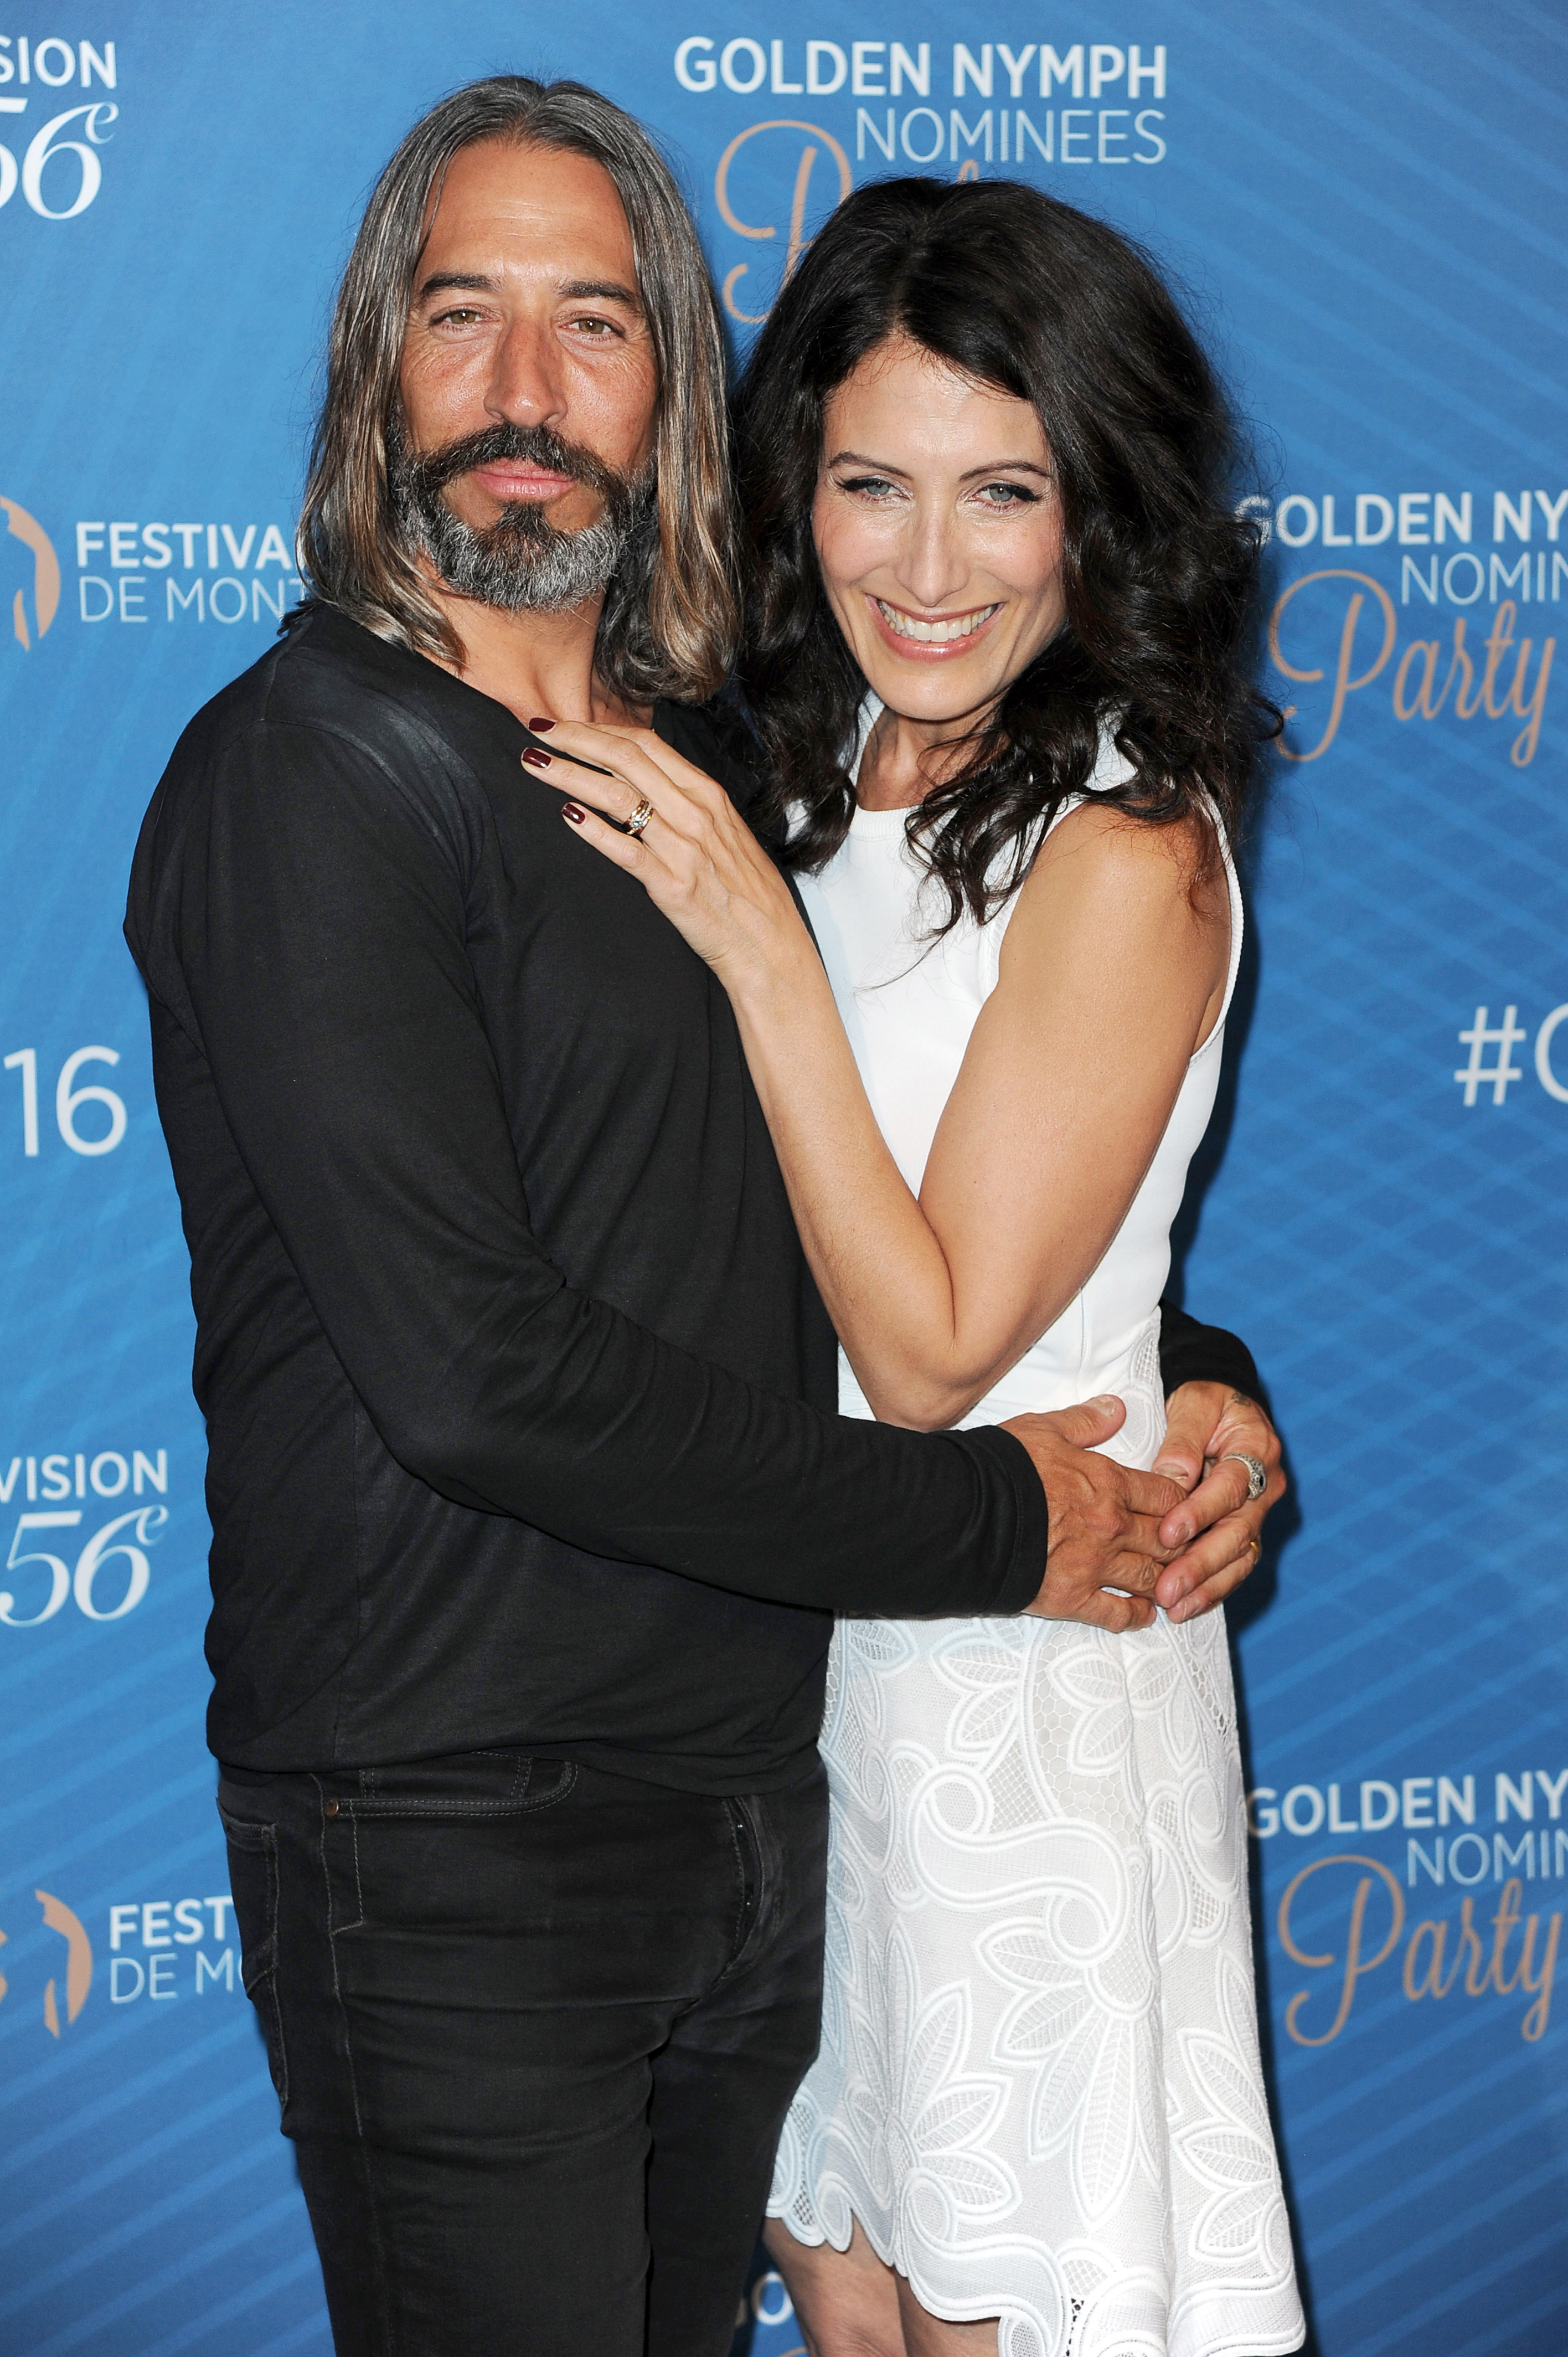 Lisa Edelstein on why 50 is her best year yet: